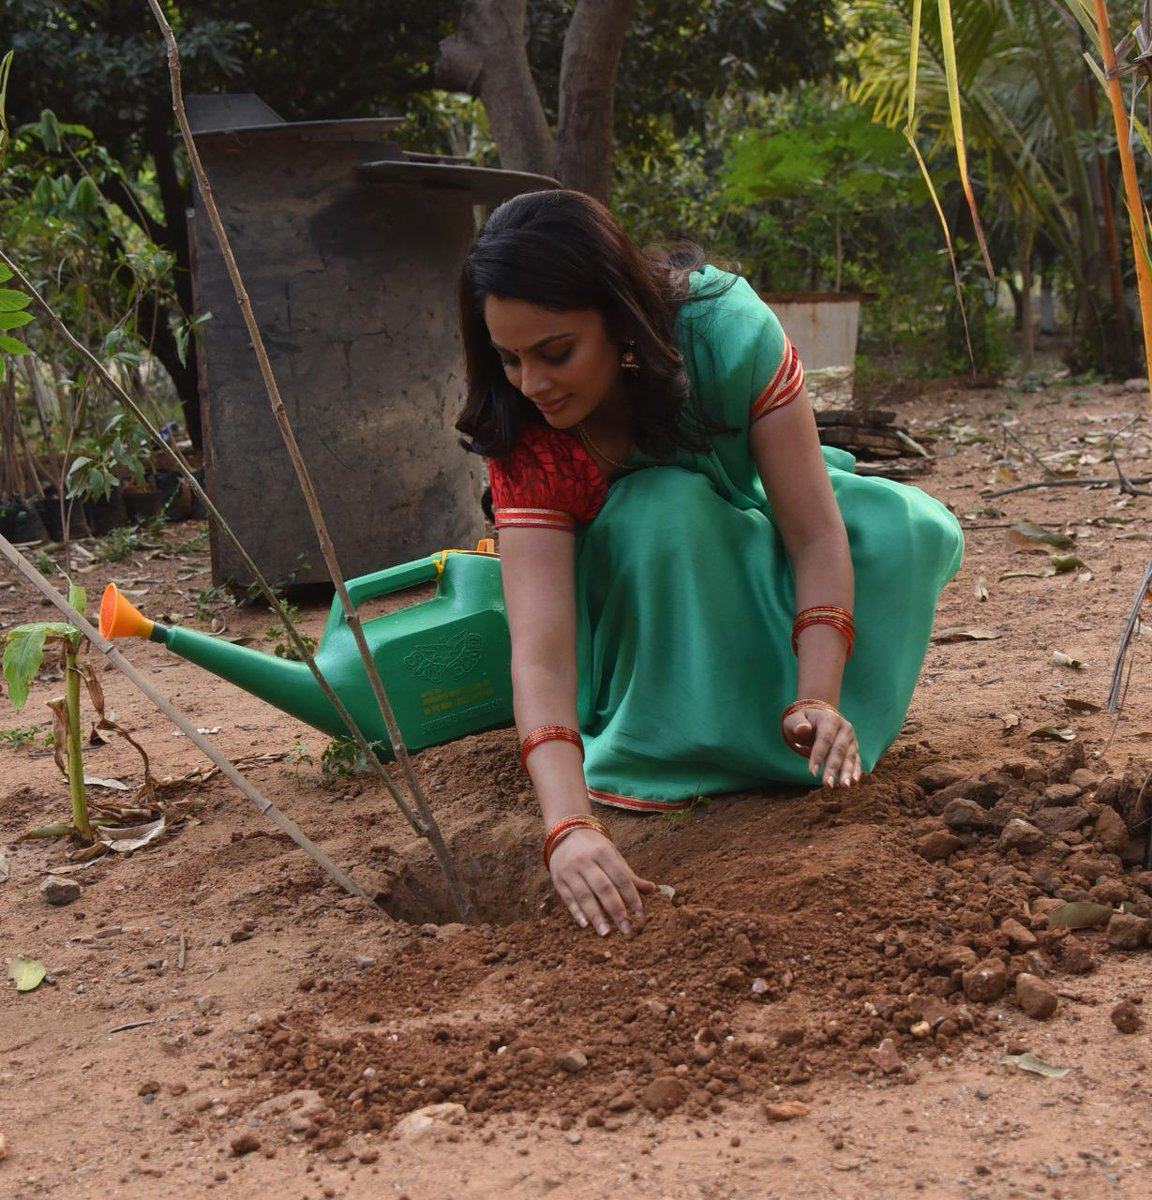 . @Nanditasweta accepted #HaraHaiTohBharaHai #GreenindiaChallenge.  Inspiration from @MPsantoshtrs Planted 3 saplings.🌱  Further,She nominated @actor_Nikhil @aishu_dil & @PrasanthVarma to plant 3 trees  Specially thanked @MPsantoshtrs for this initiative.